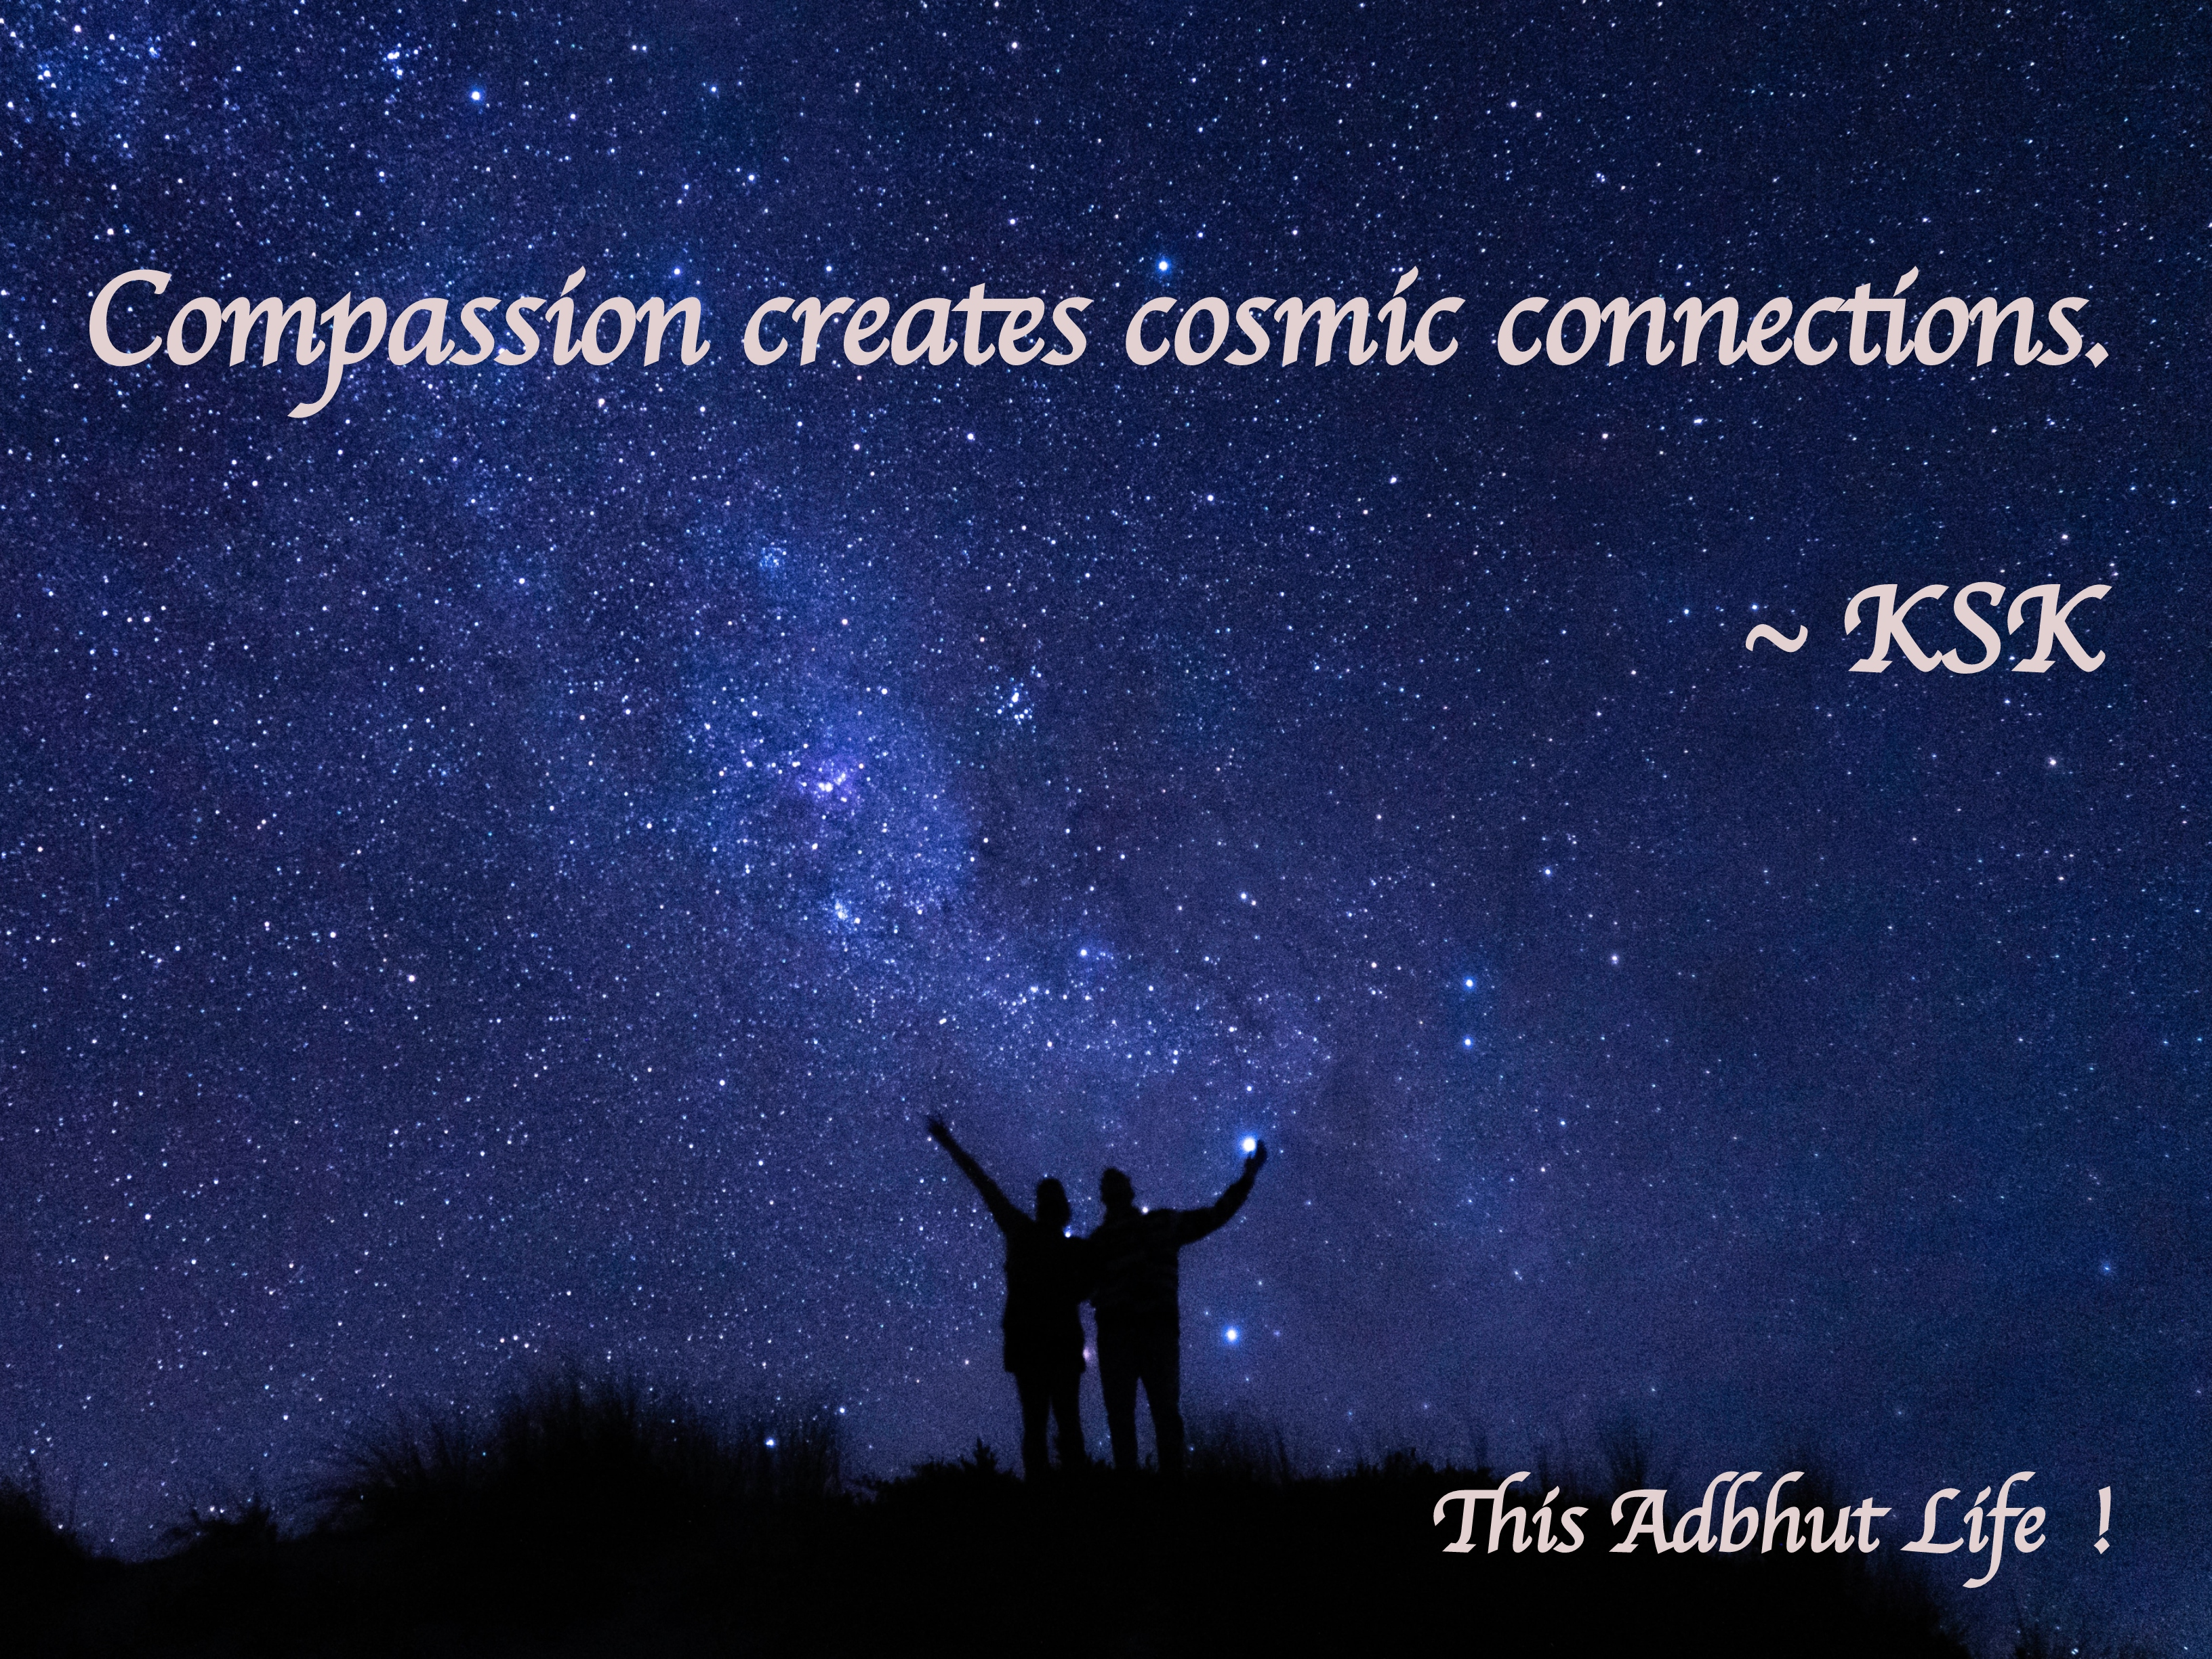 Compassion, cosmic connections